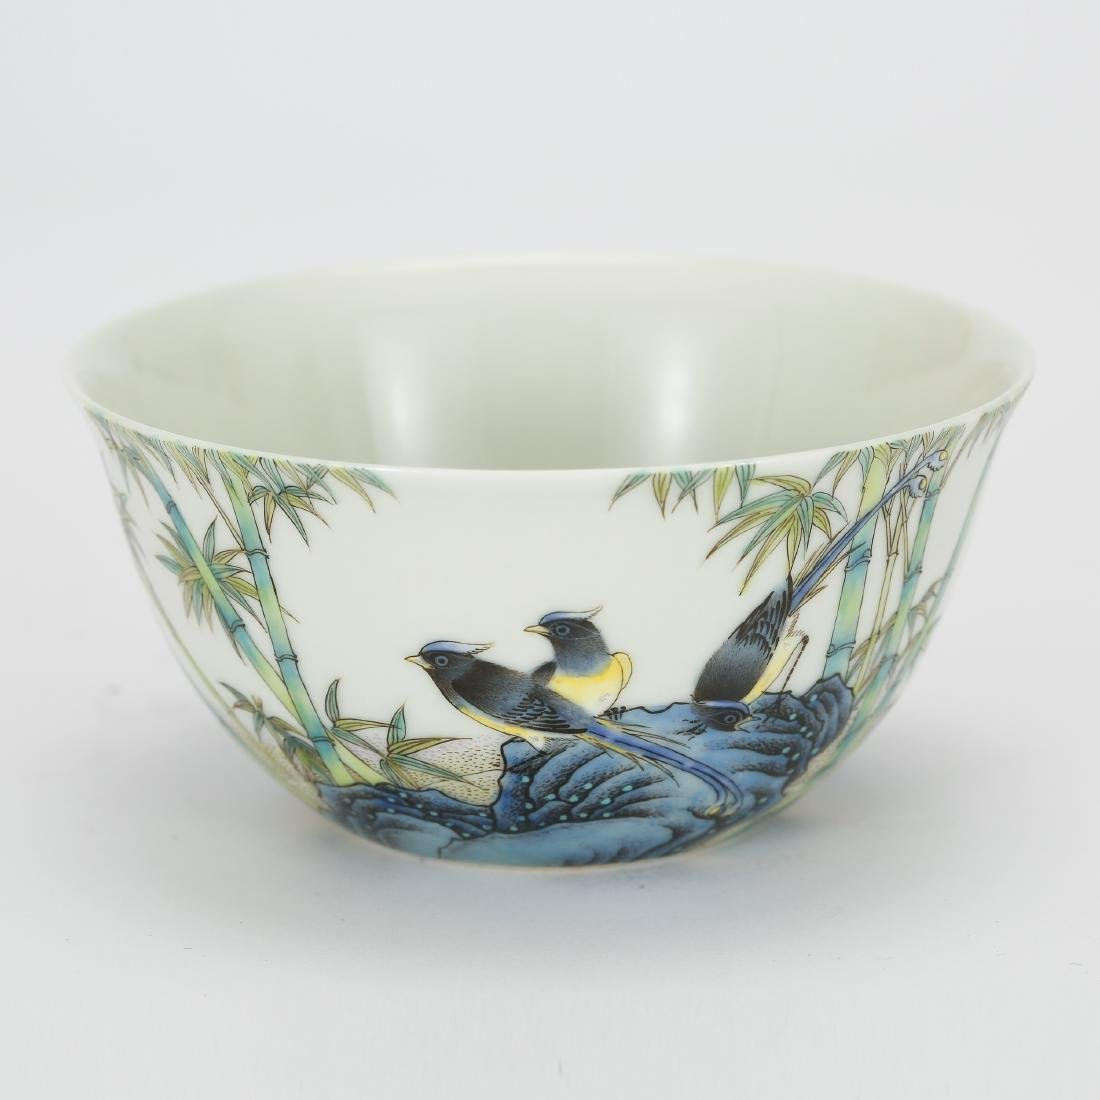 CHINESE PAINTED PORCELAIN BOWL